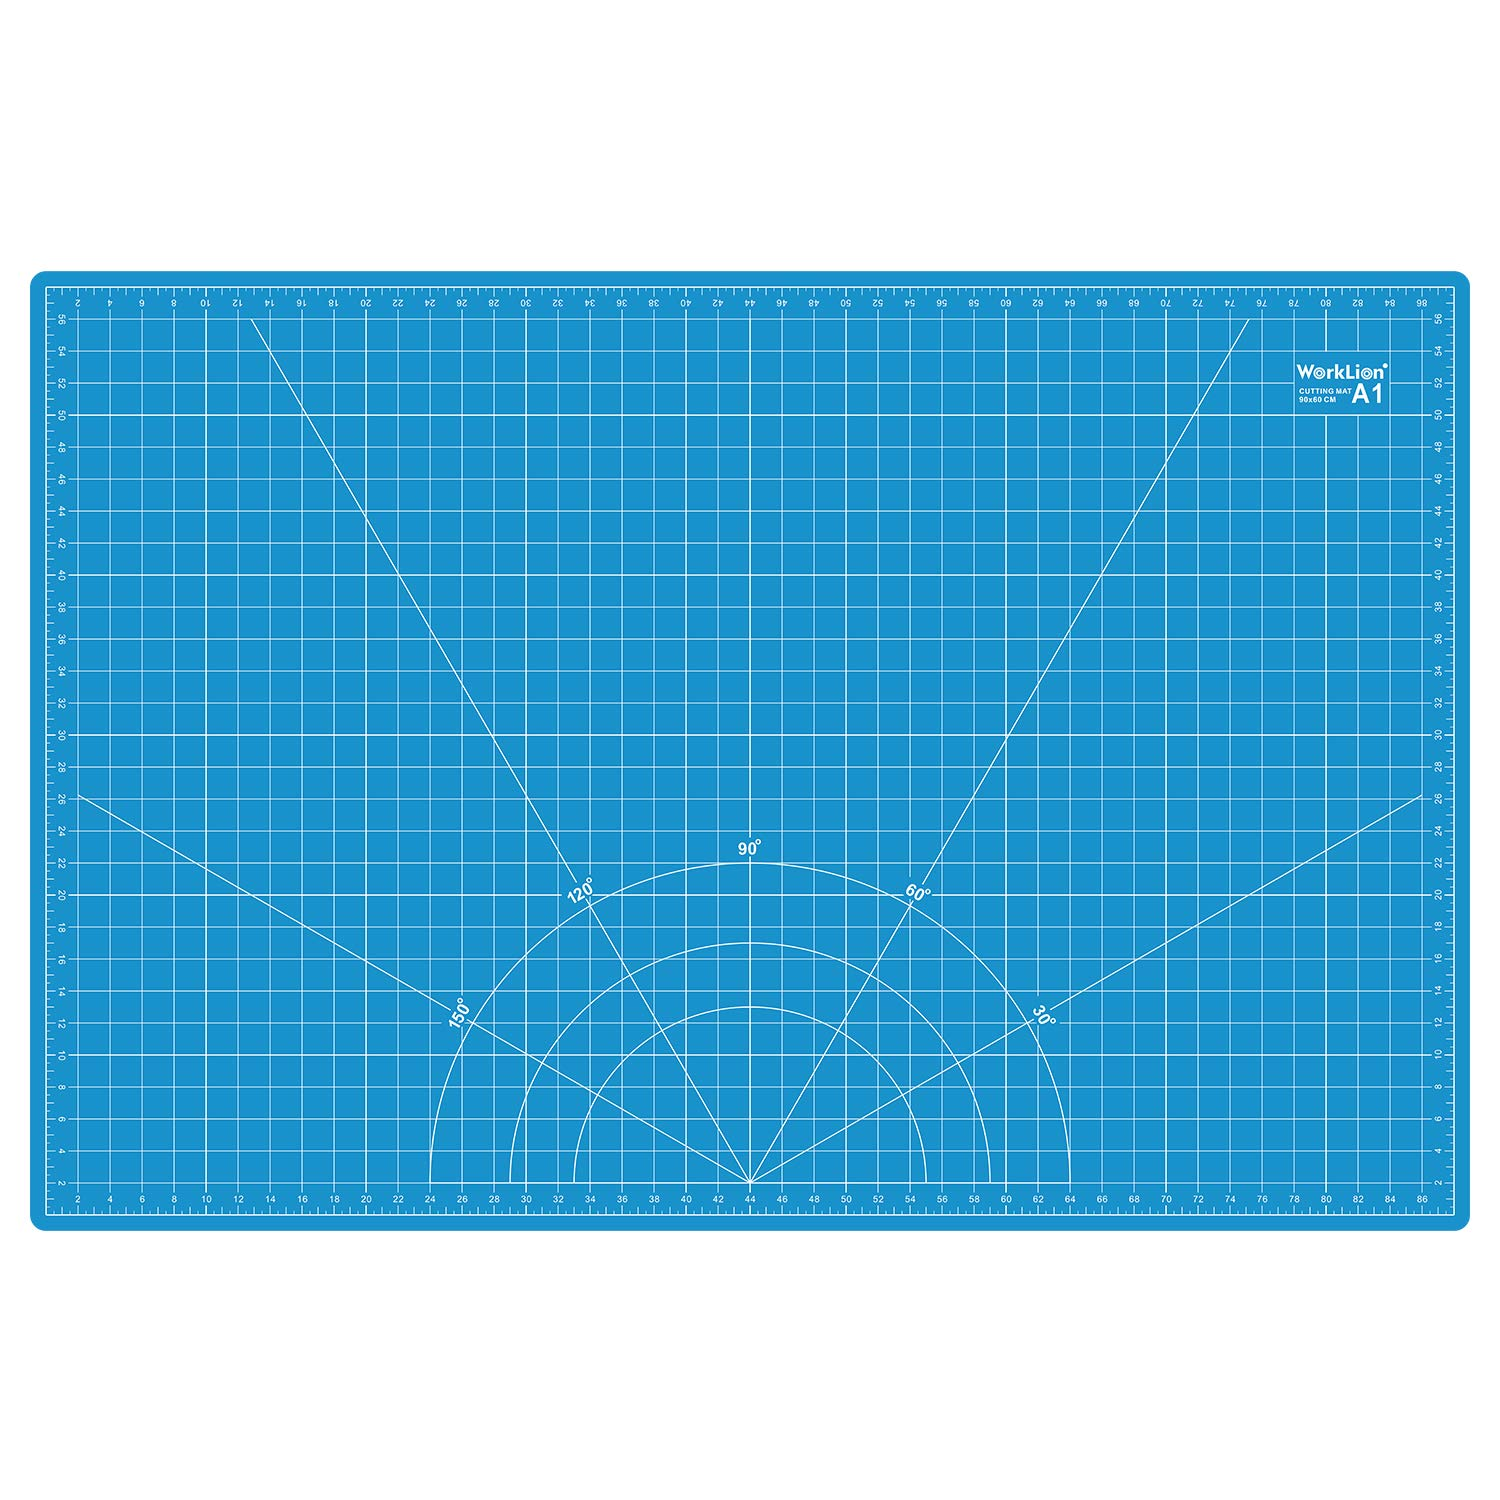 WORKLION 24'' x 36'' Large Self Healing PVC Cutting Mat, Double Sided, Gridded Rotary Cutting Board for Craft, Fabric, Quilting, Sewing, Scrapbooking - Art Project by WORKLION